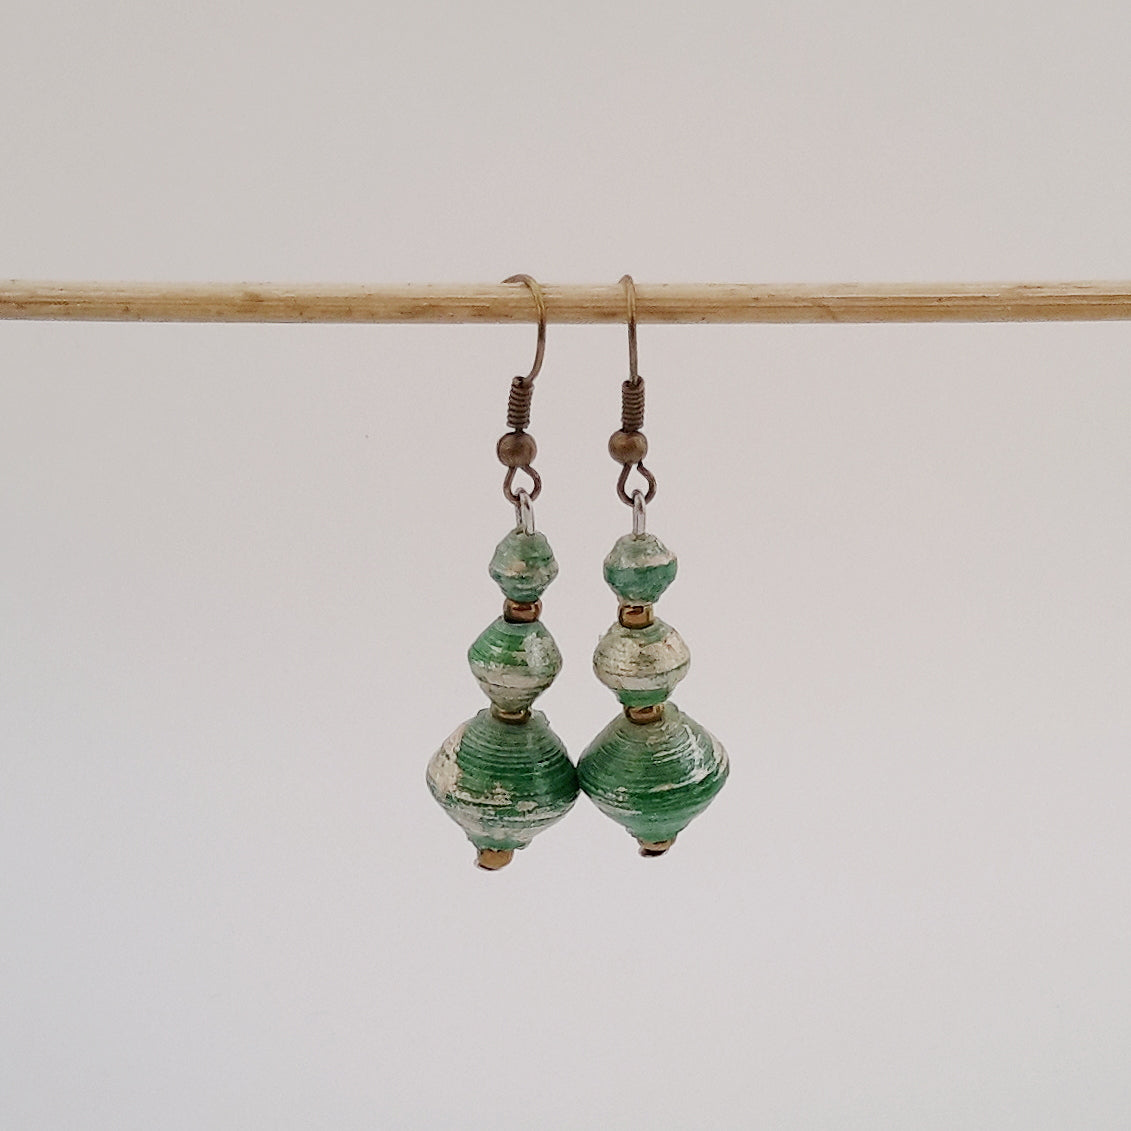 Green hand made ethical design paper bead earrings made out of recycled paper in Uganda by principles of fair trade, ethical and sustainable fashion, empowering women of post war area, by Finnish / Scandinavian brand, Agulu Paper Beads. Eettiset vihreät käsintehdyt design korvakorut, joka on tehty kierrätyspaperista reilun kaupan periaattein työllistämällä kehitysmaan nasia.